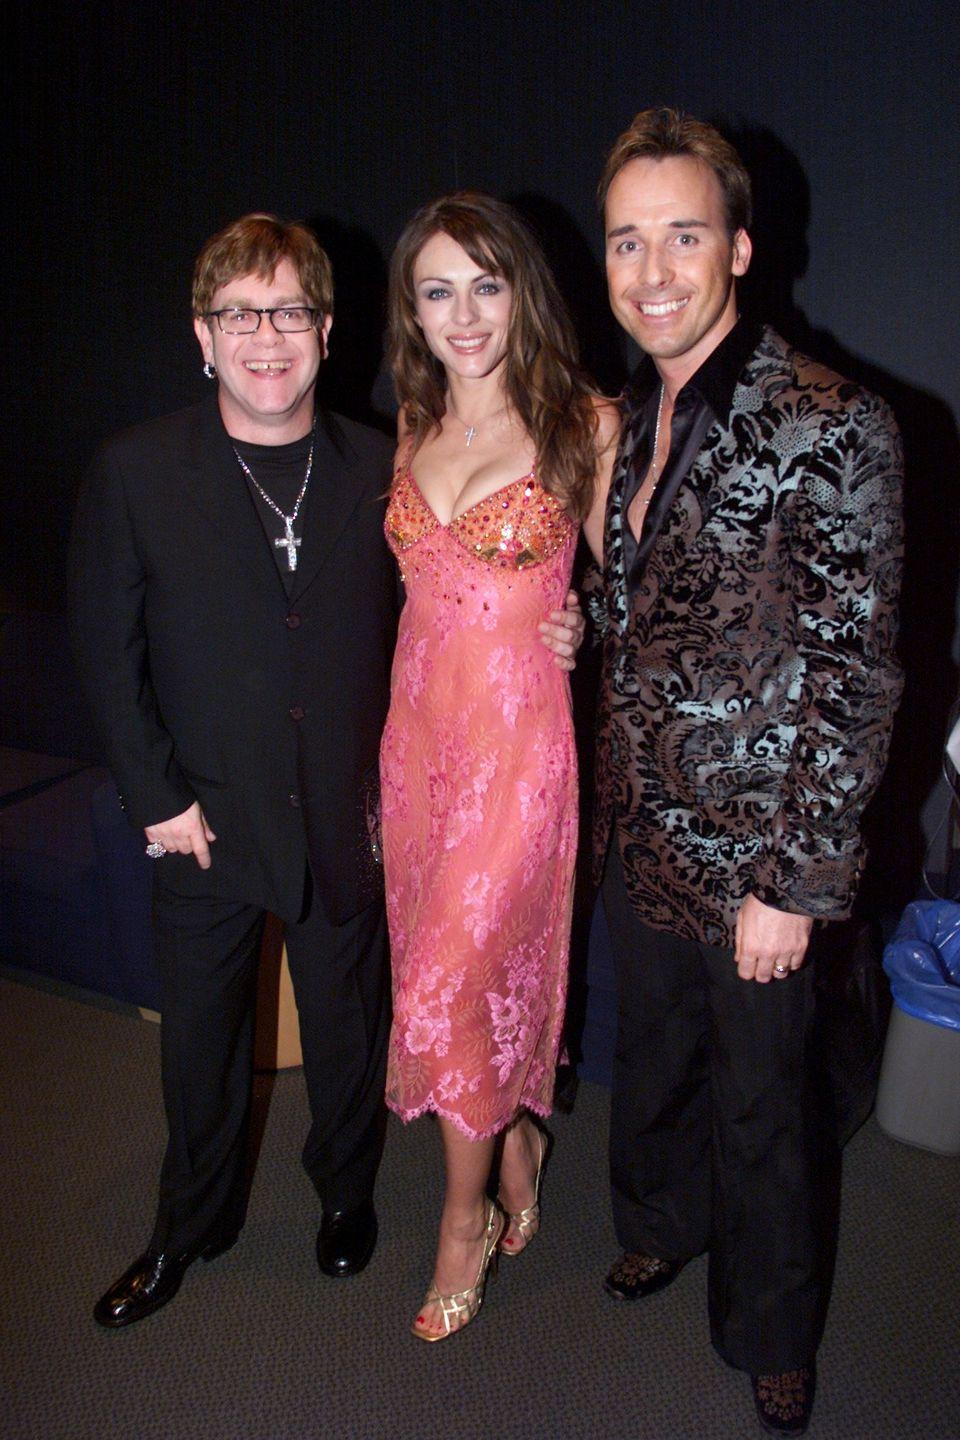 <p>Elton John, a longtime friend of Elizabeth's, was named them2000 MusiCares Person of the Year by the GRAMMY Awards. So, naturally, she showed up to support him. Here she is posing with the singer and his spouse, David Furnish.</p>